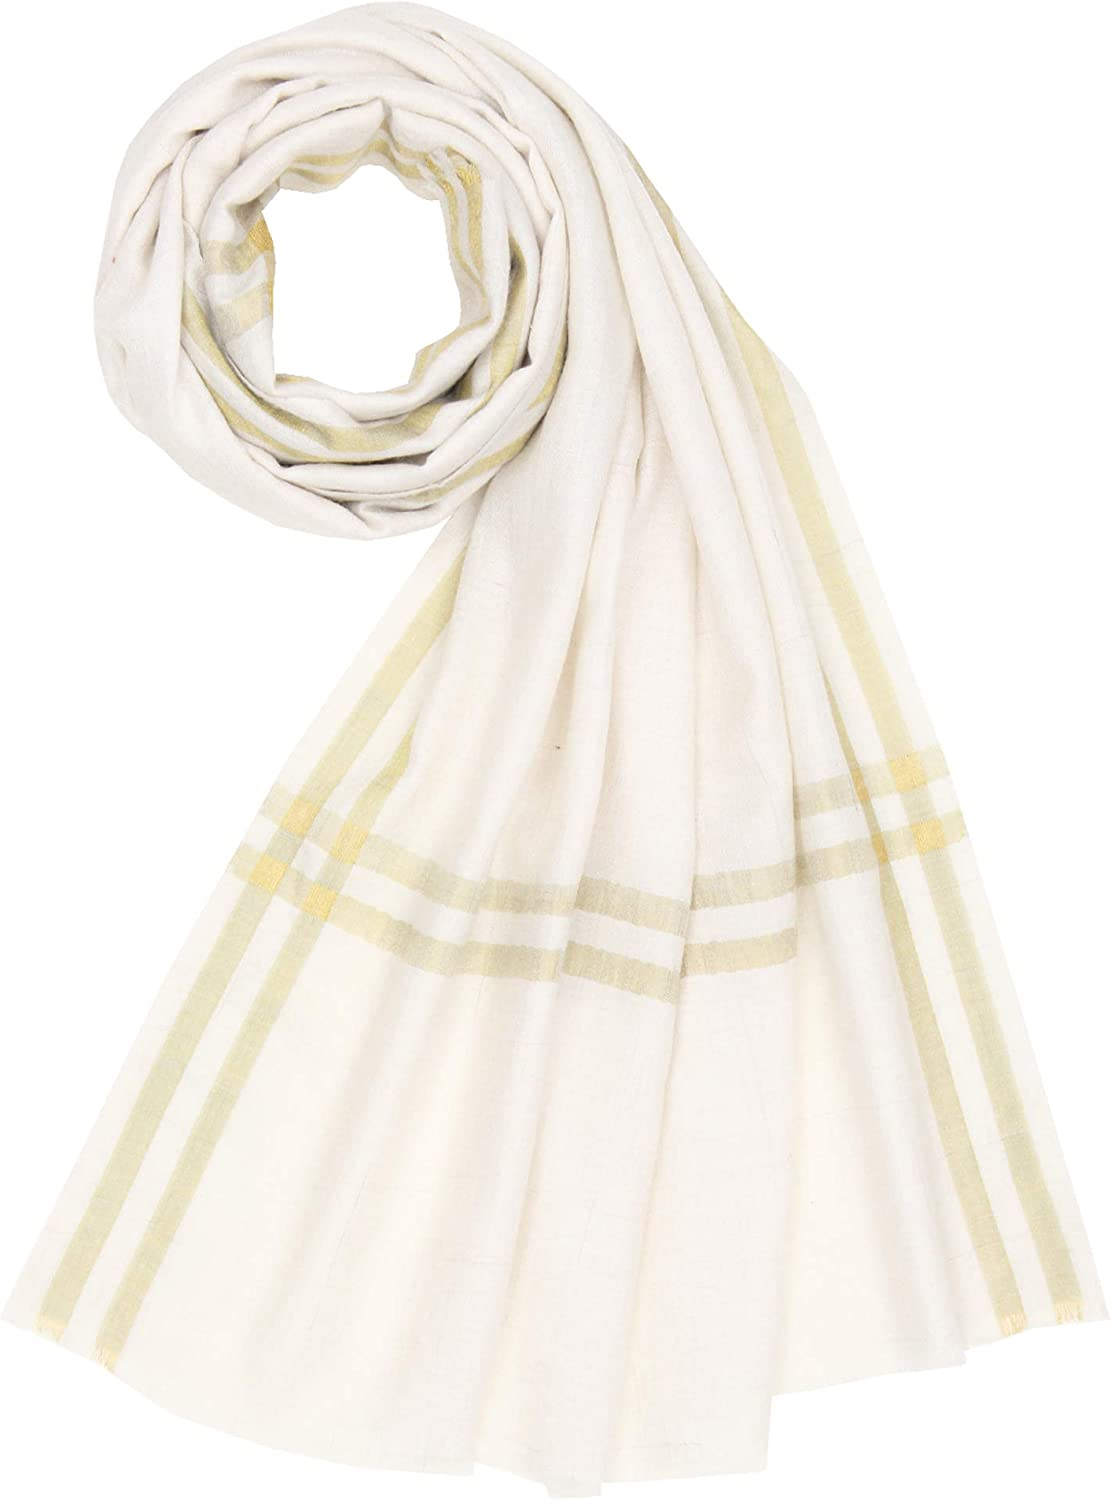 100% Handspun Cashmere Womens Mens Stripes Scarf Stole Shawl Ivory gold